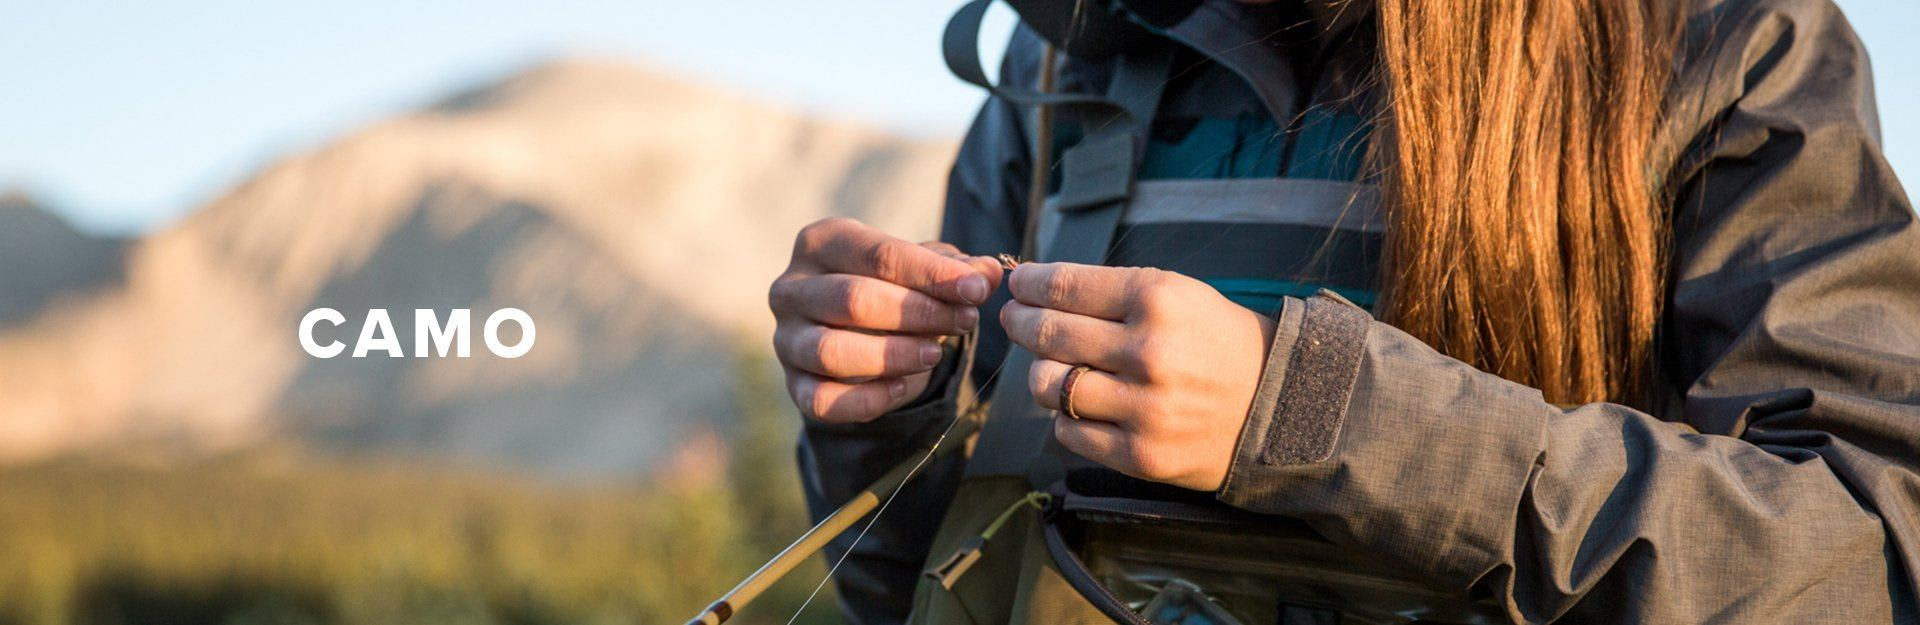 Camo, a woman ties a fly while fishing